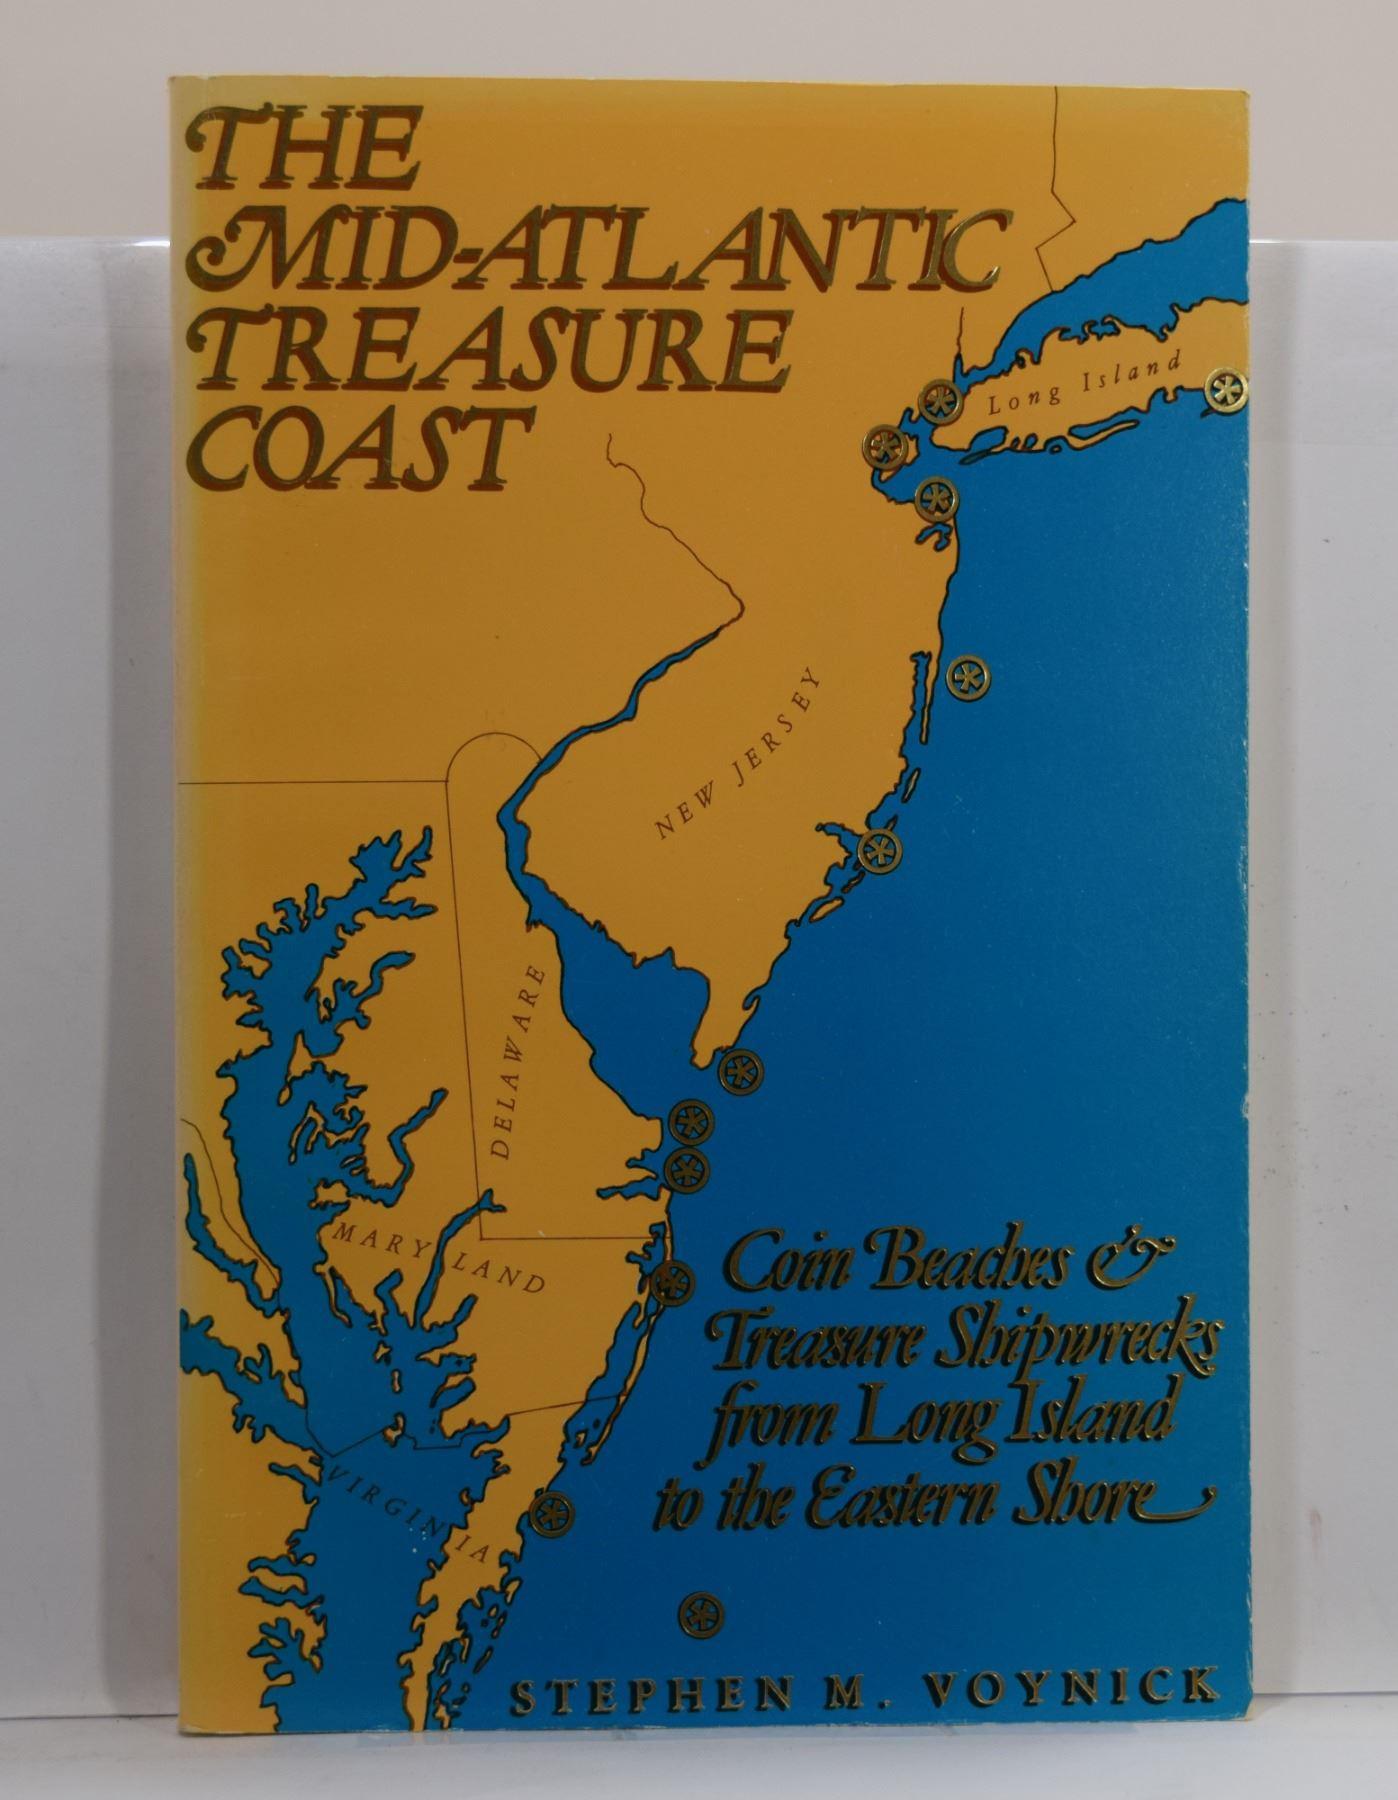 Voynick: The Mid-Atlantic Treasure Coast: Coin Beaches & Treasure  Shipwrecks from Long Island to the